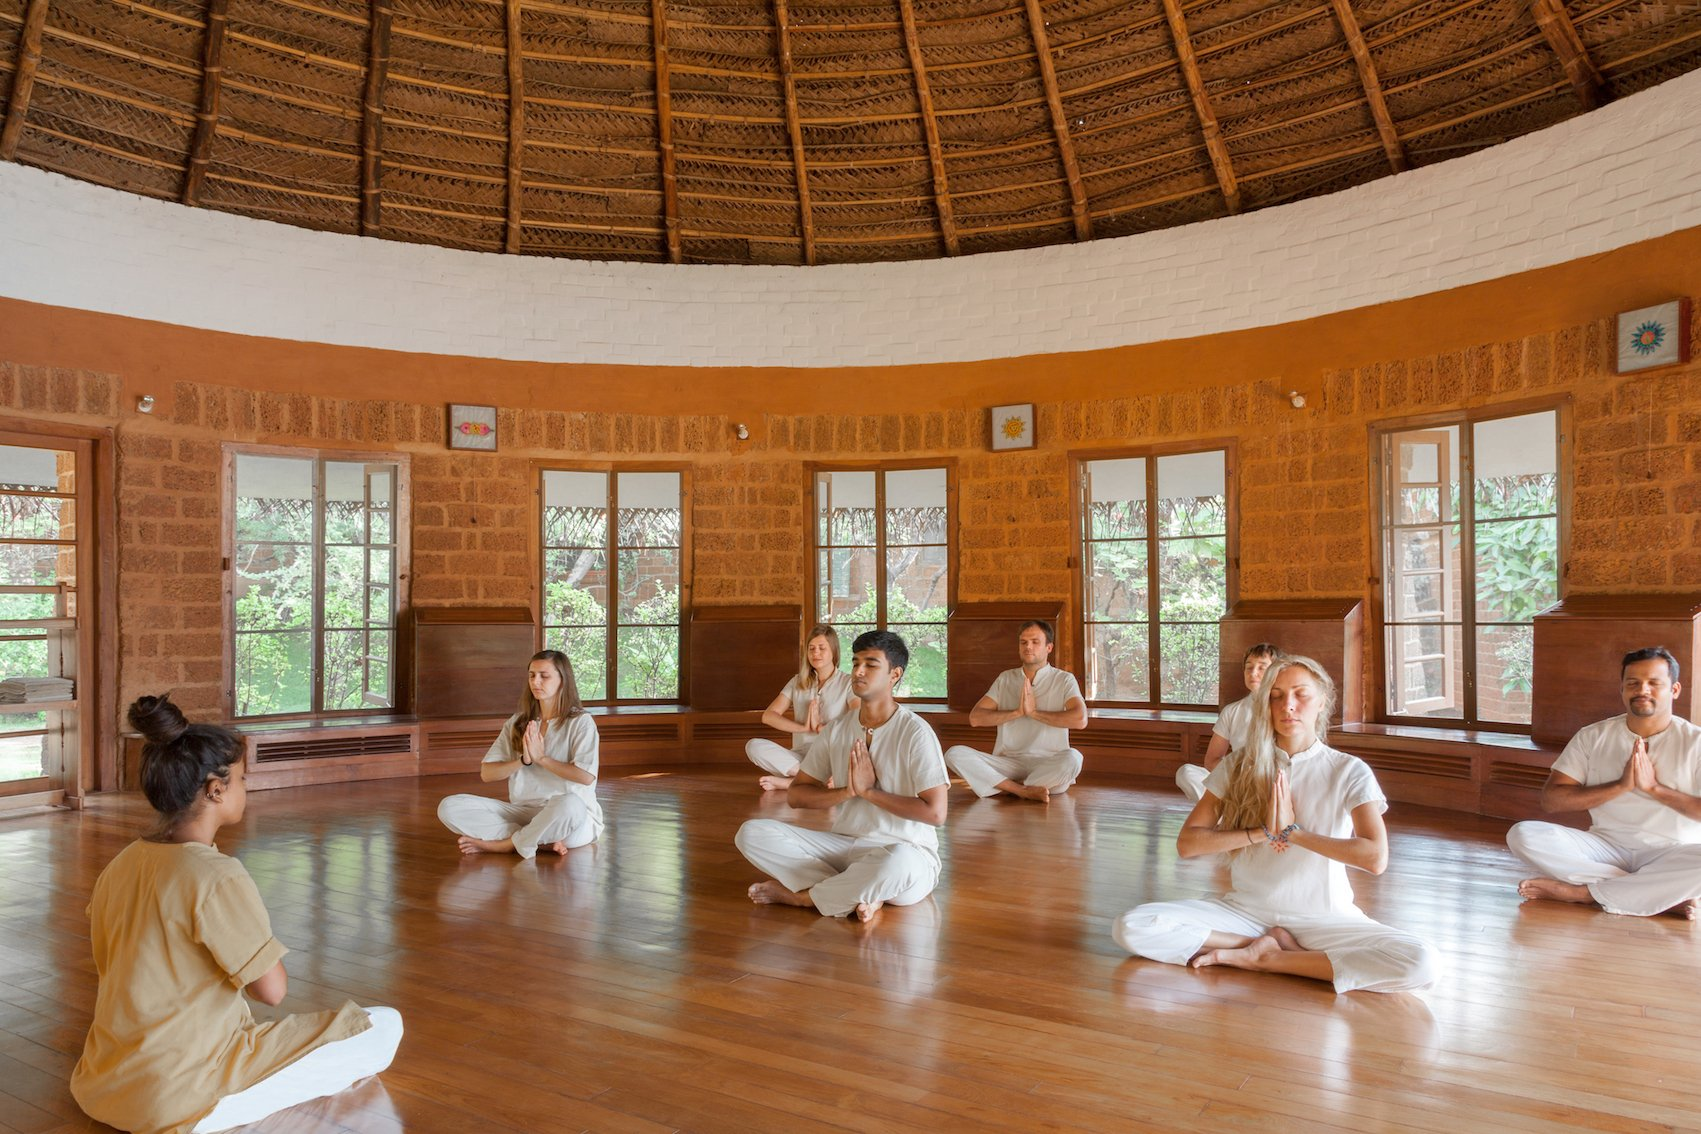 Yoga classes at SwaSwara, recreation at its best.